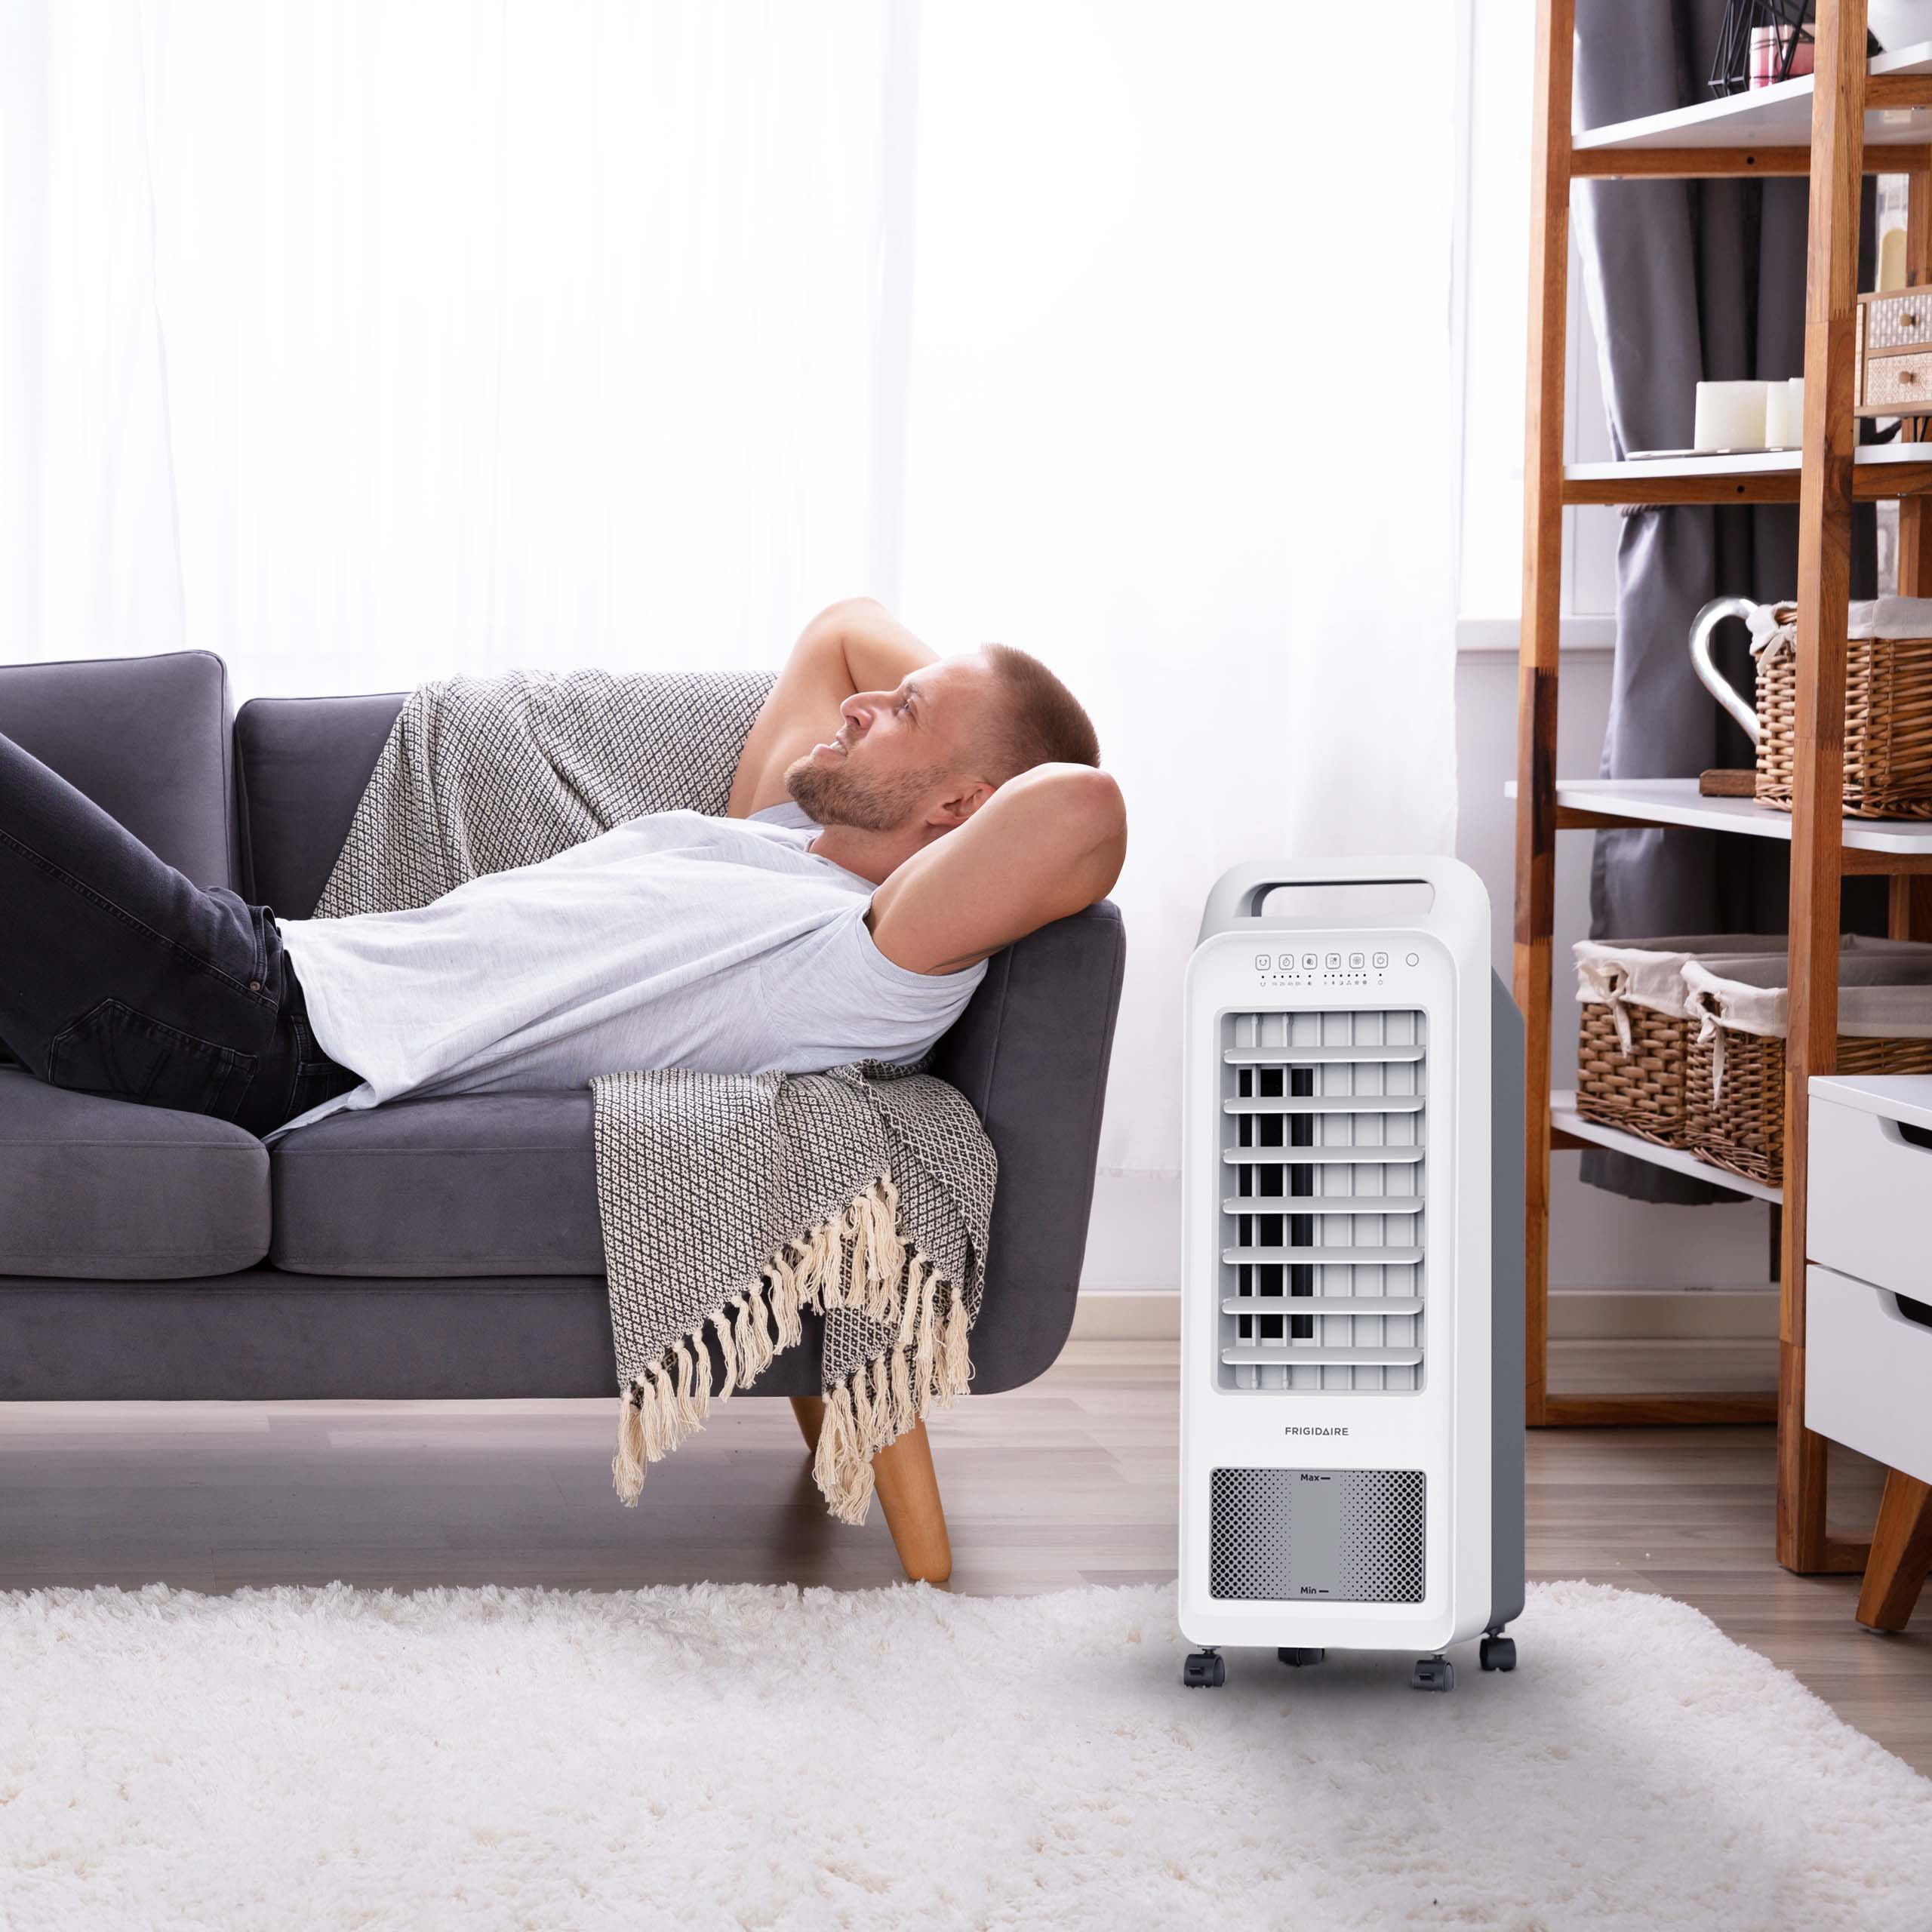 Frigidaire 2-in-1 Personal Evaporative Air Cooler and Fan, 100 sq  ft  with  Compact Design & Removable Water Tank